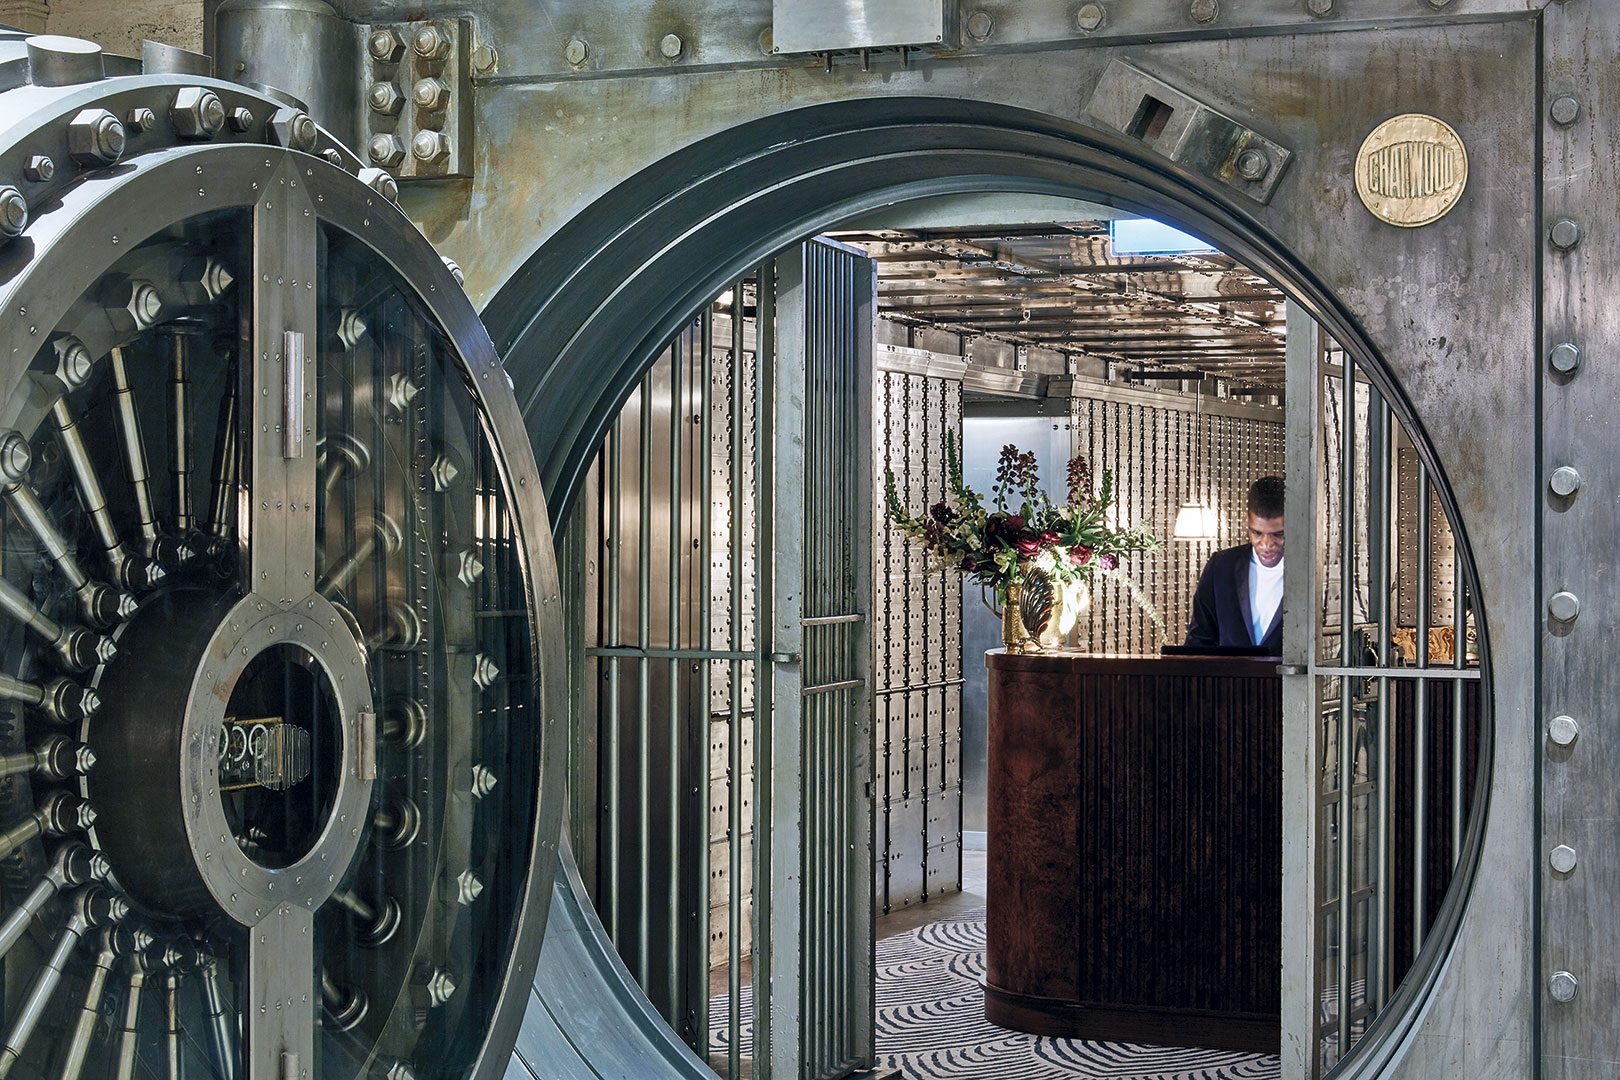 The hotel's subterranean bar and an actual former bank vault where a fortune of gold bullion was once stored.